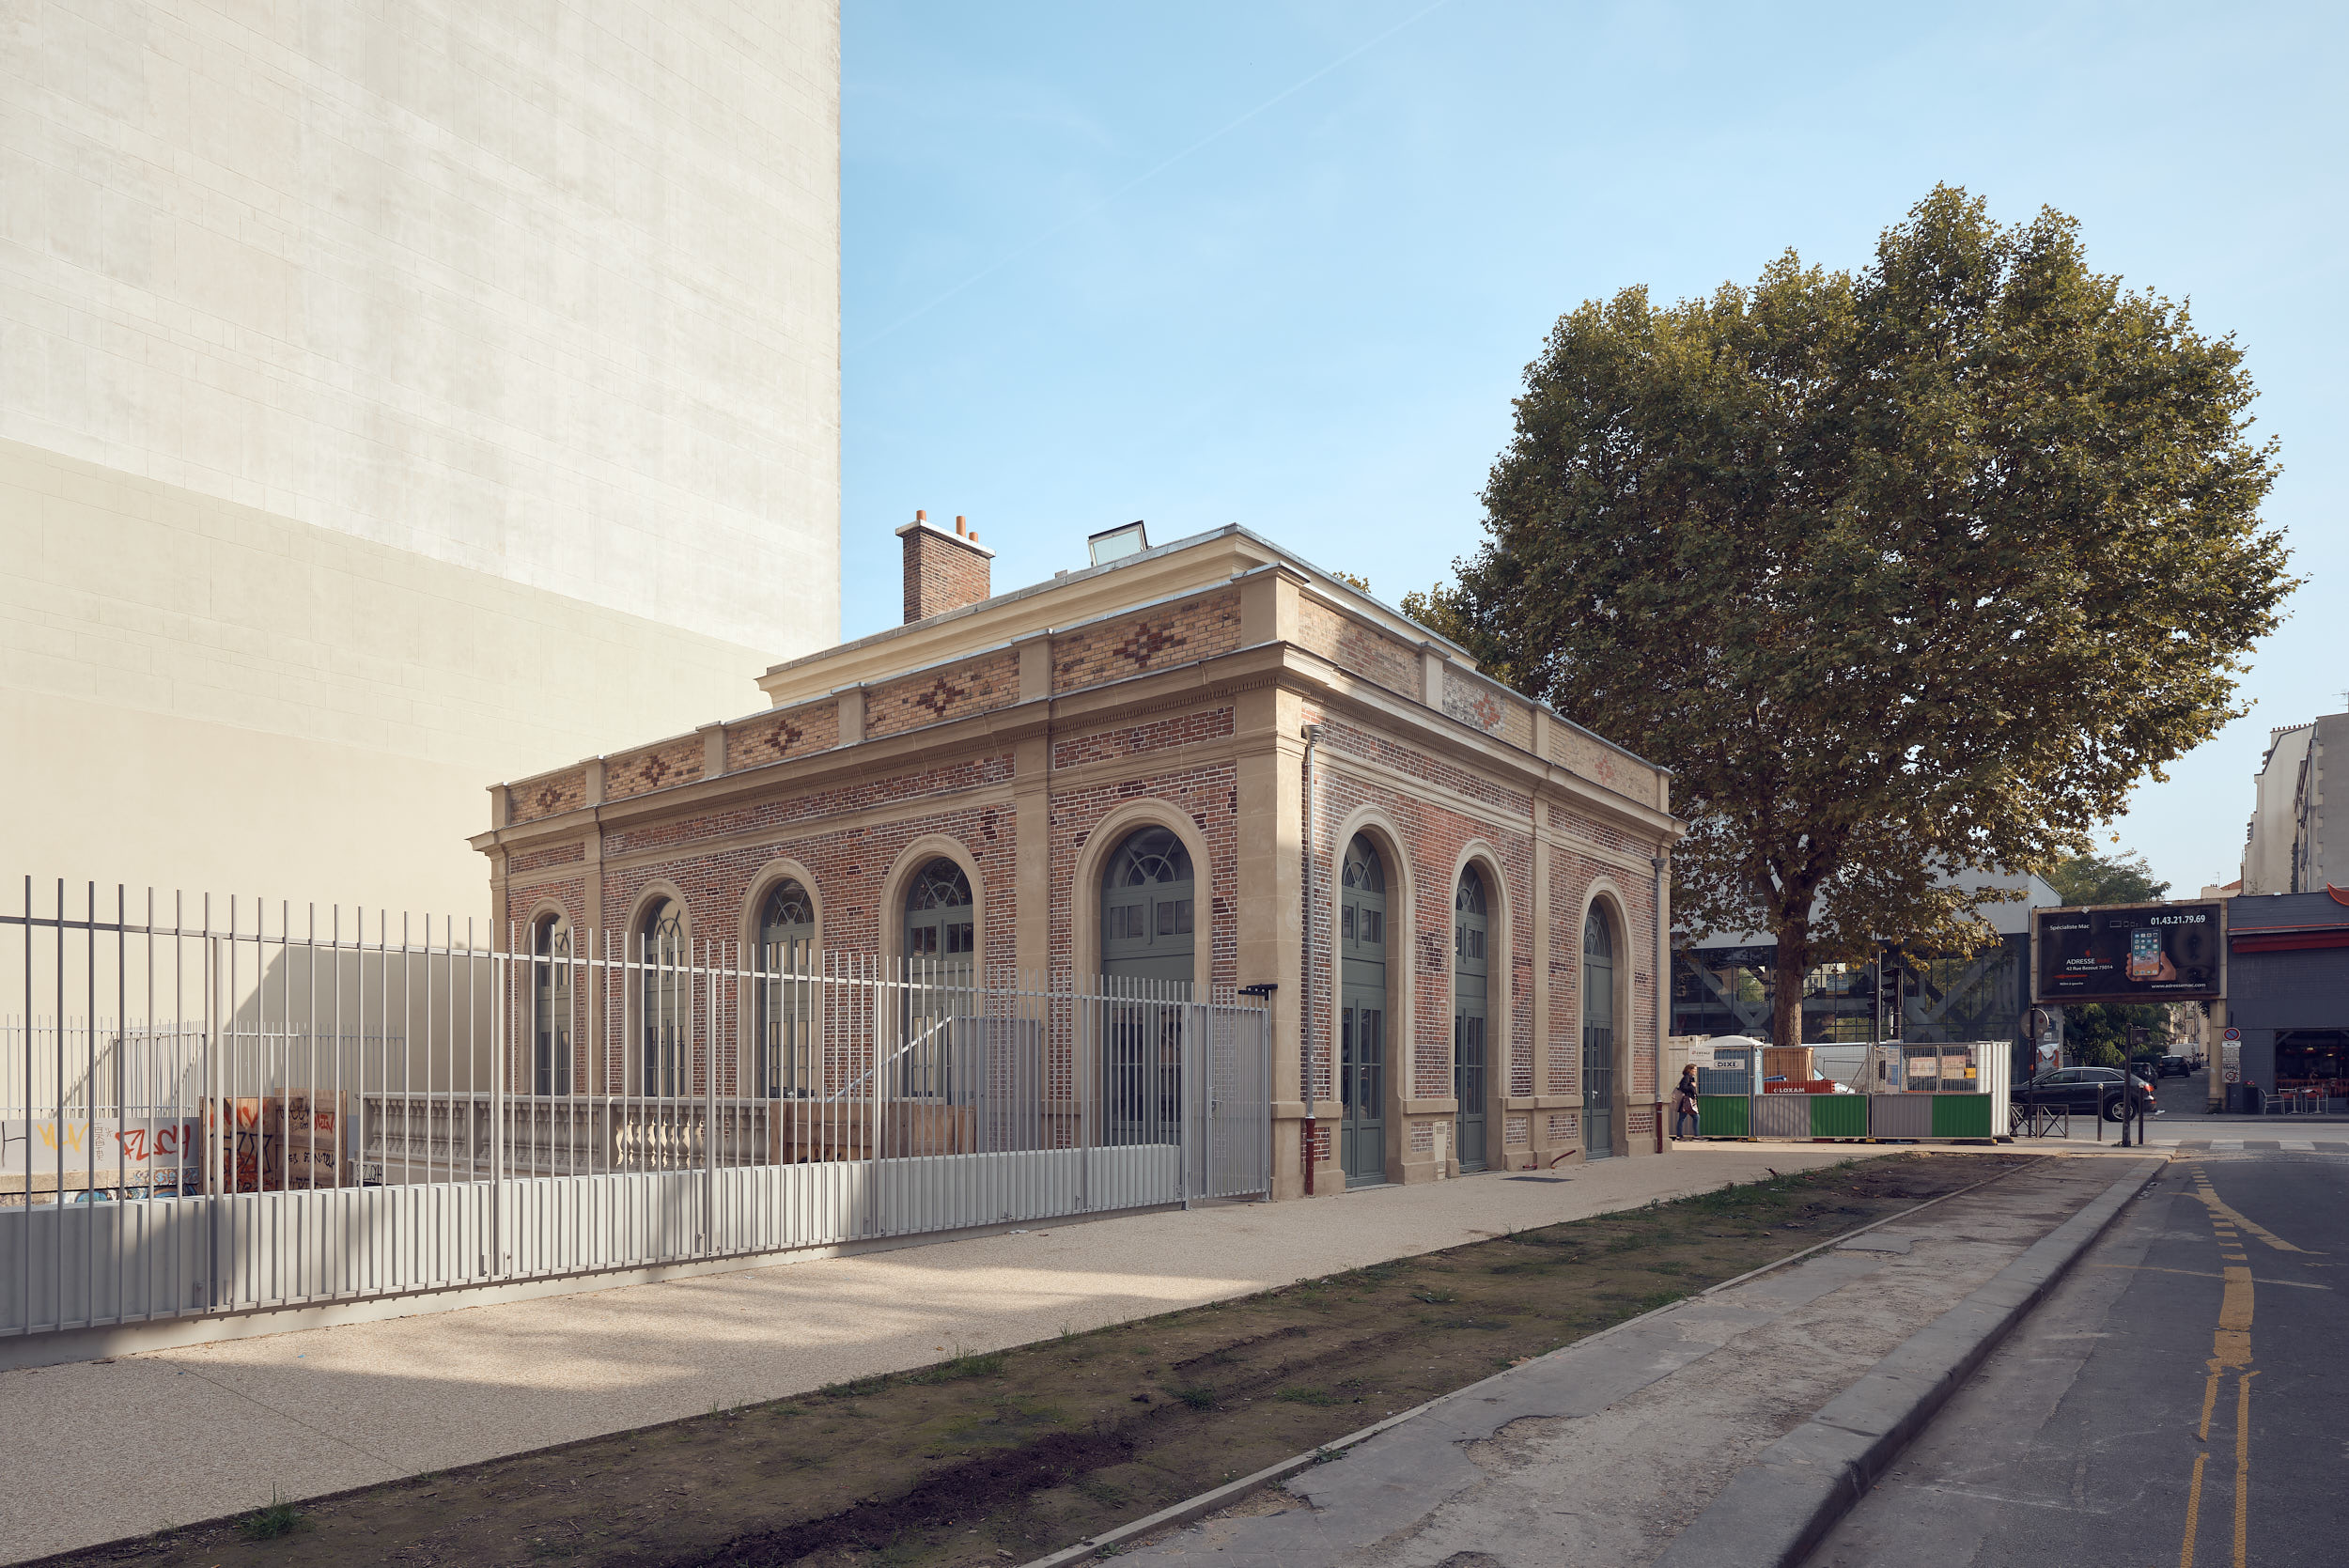 Louis Paillard architectes